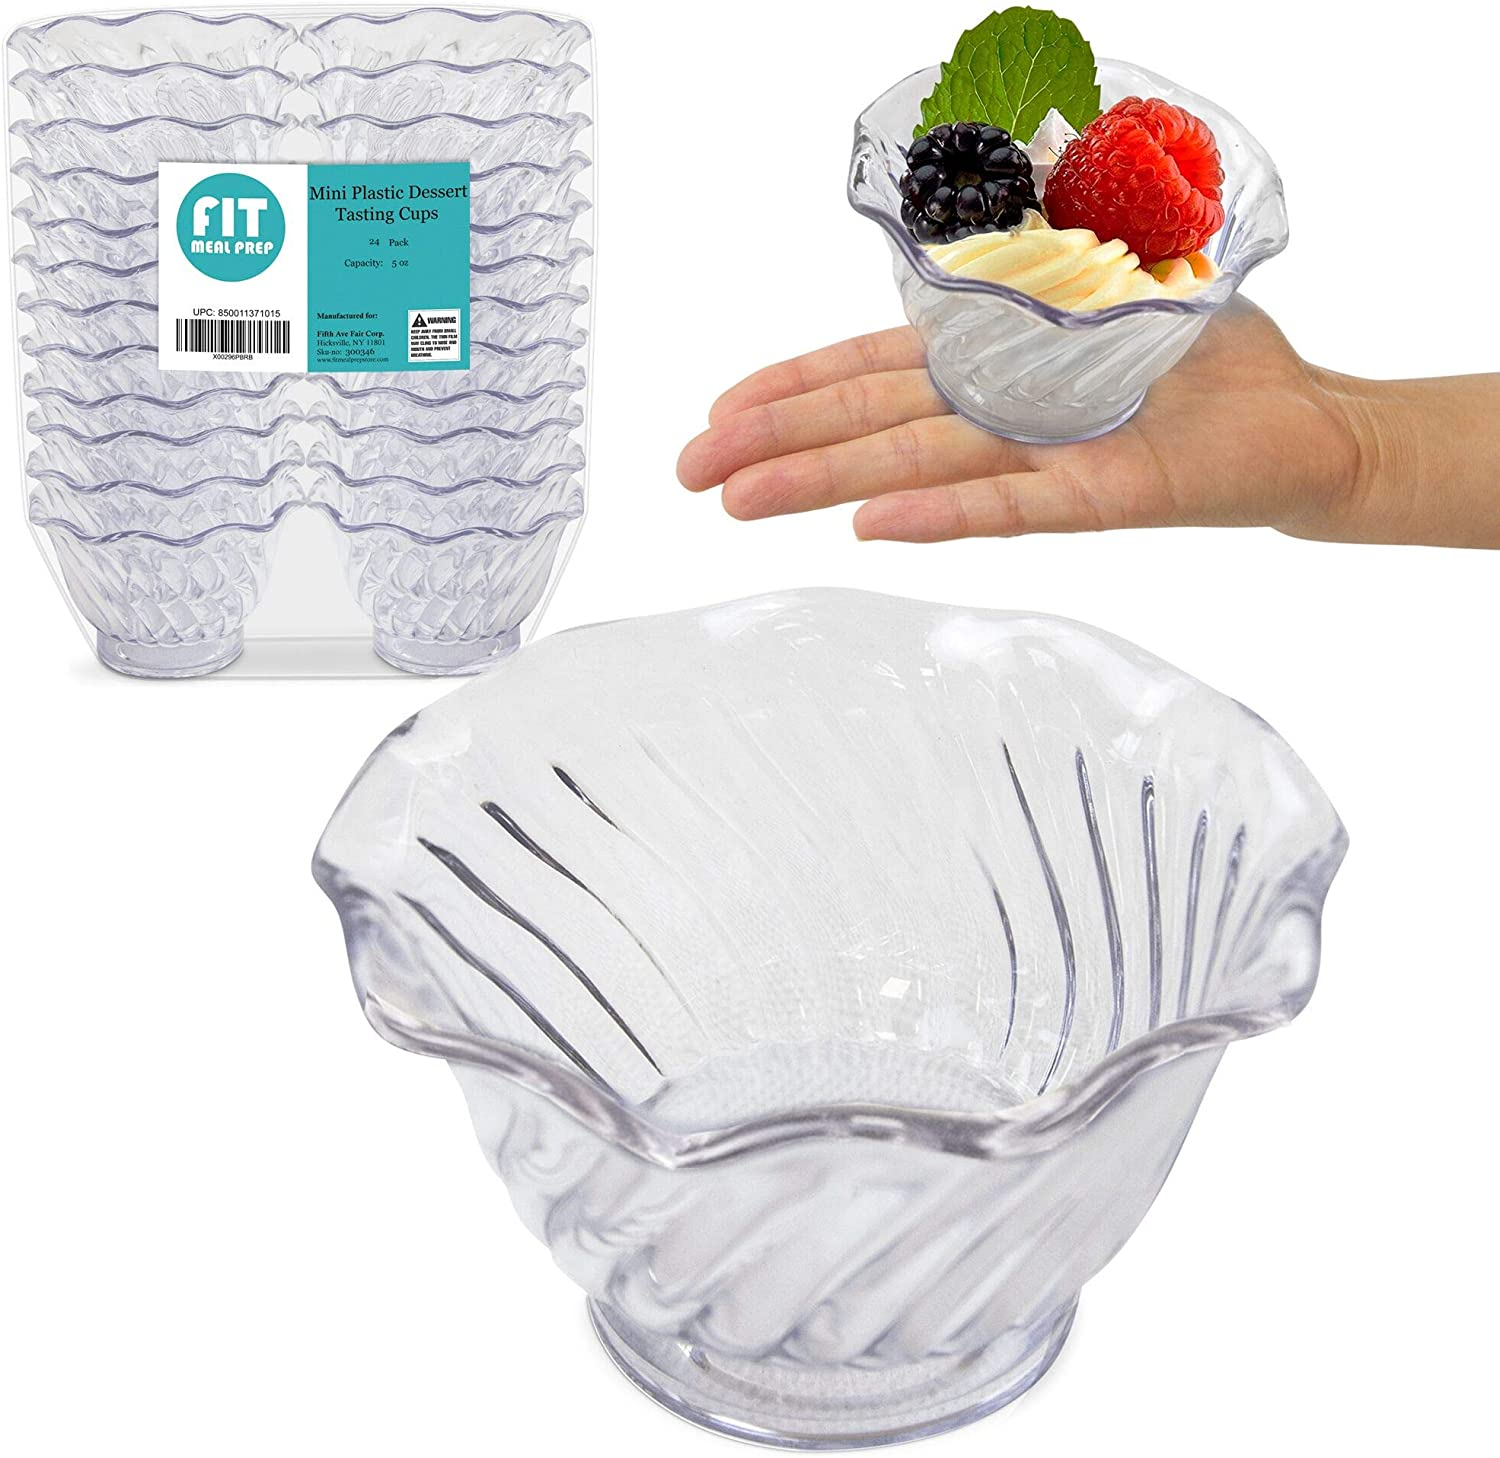 Amazon Com 24 Pack Plastic Dessert Cups 5 Oz Clear Mini Ice Cream Sundae Tasting Bowls Individual Swirl Tulip Shape Dish Holder Salad Appetizer Chocolate Candy Serving In Party Buffet Commercial Home